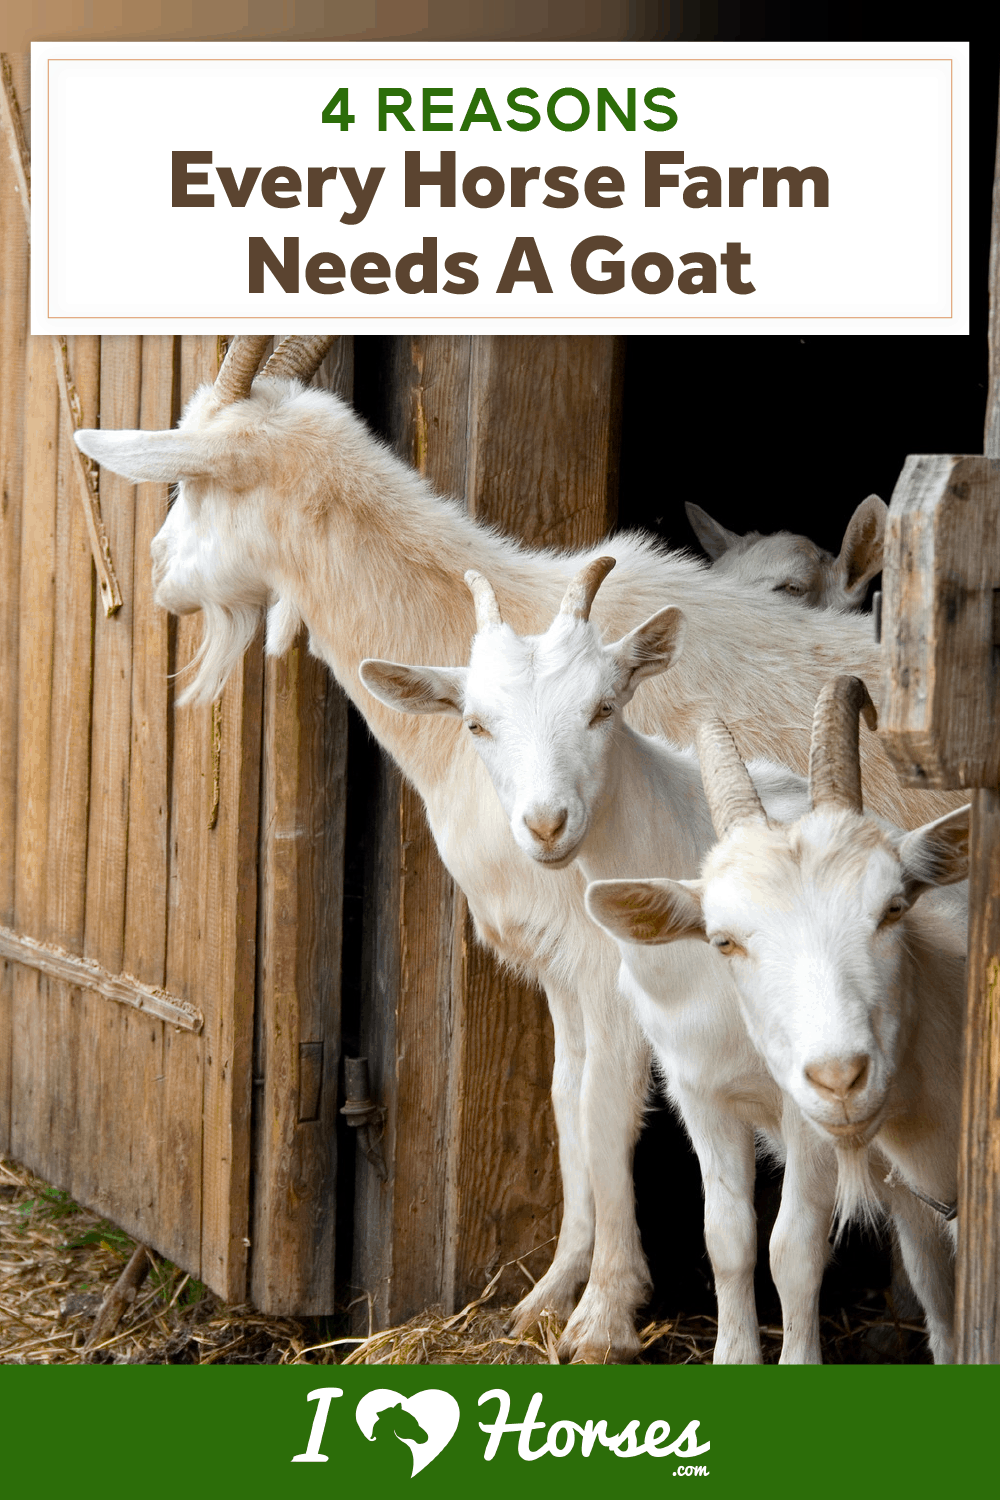 4 Reasons Every Horse Farm Needs A Goat-02